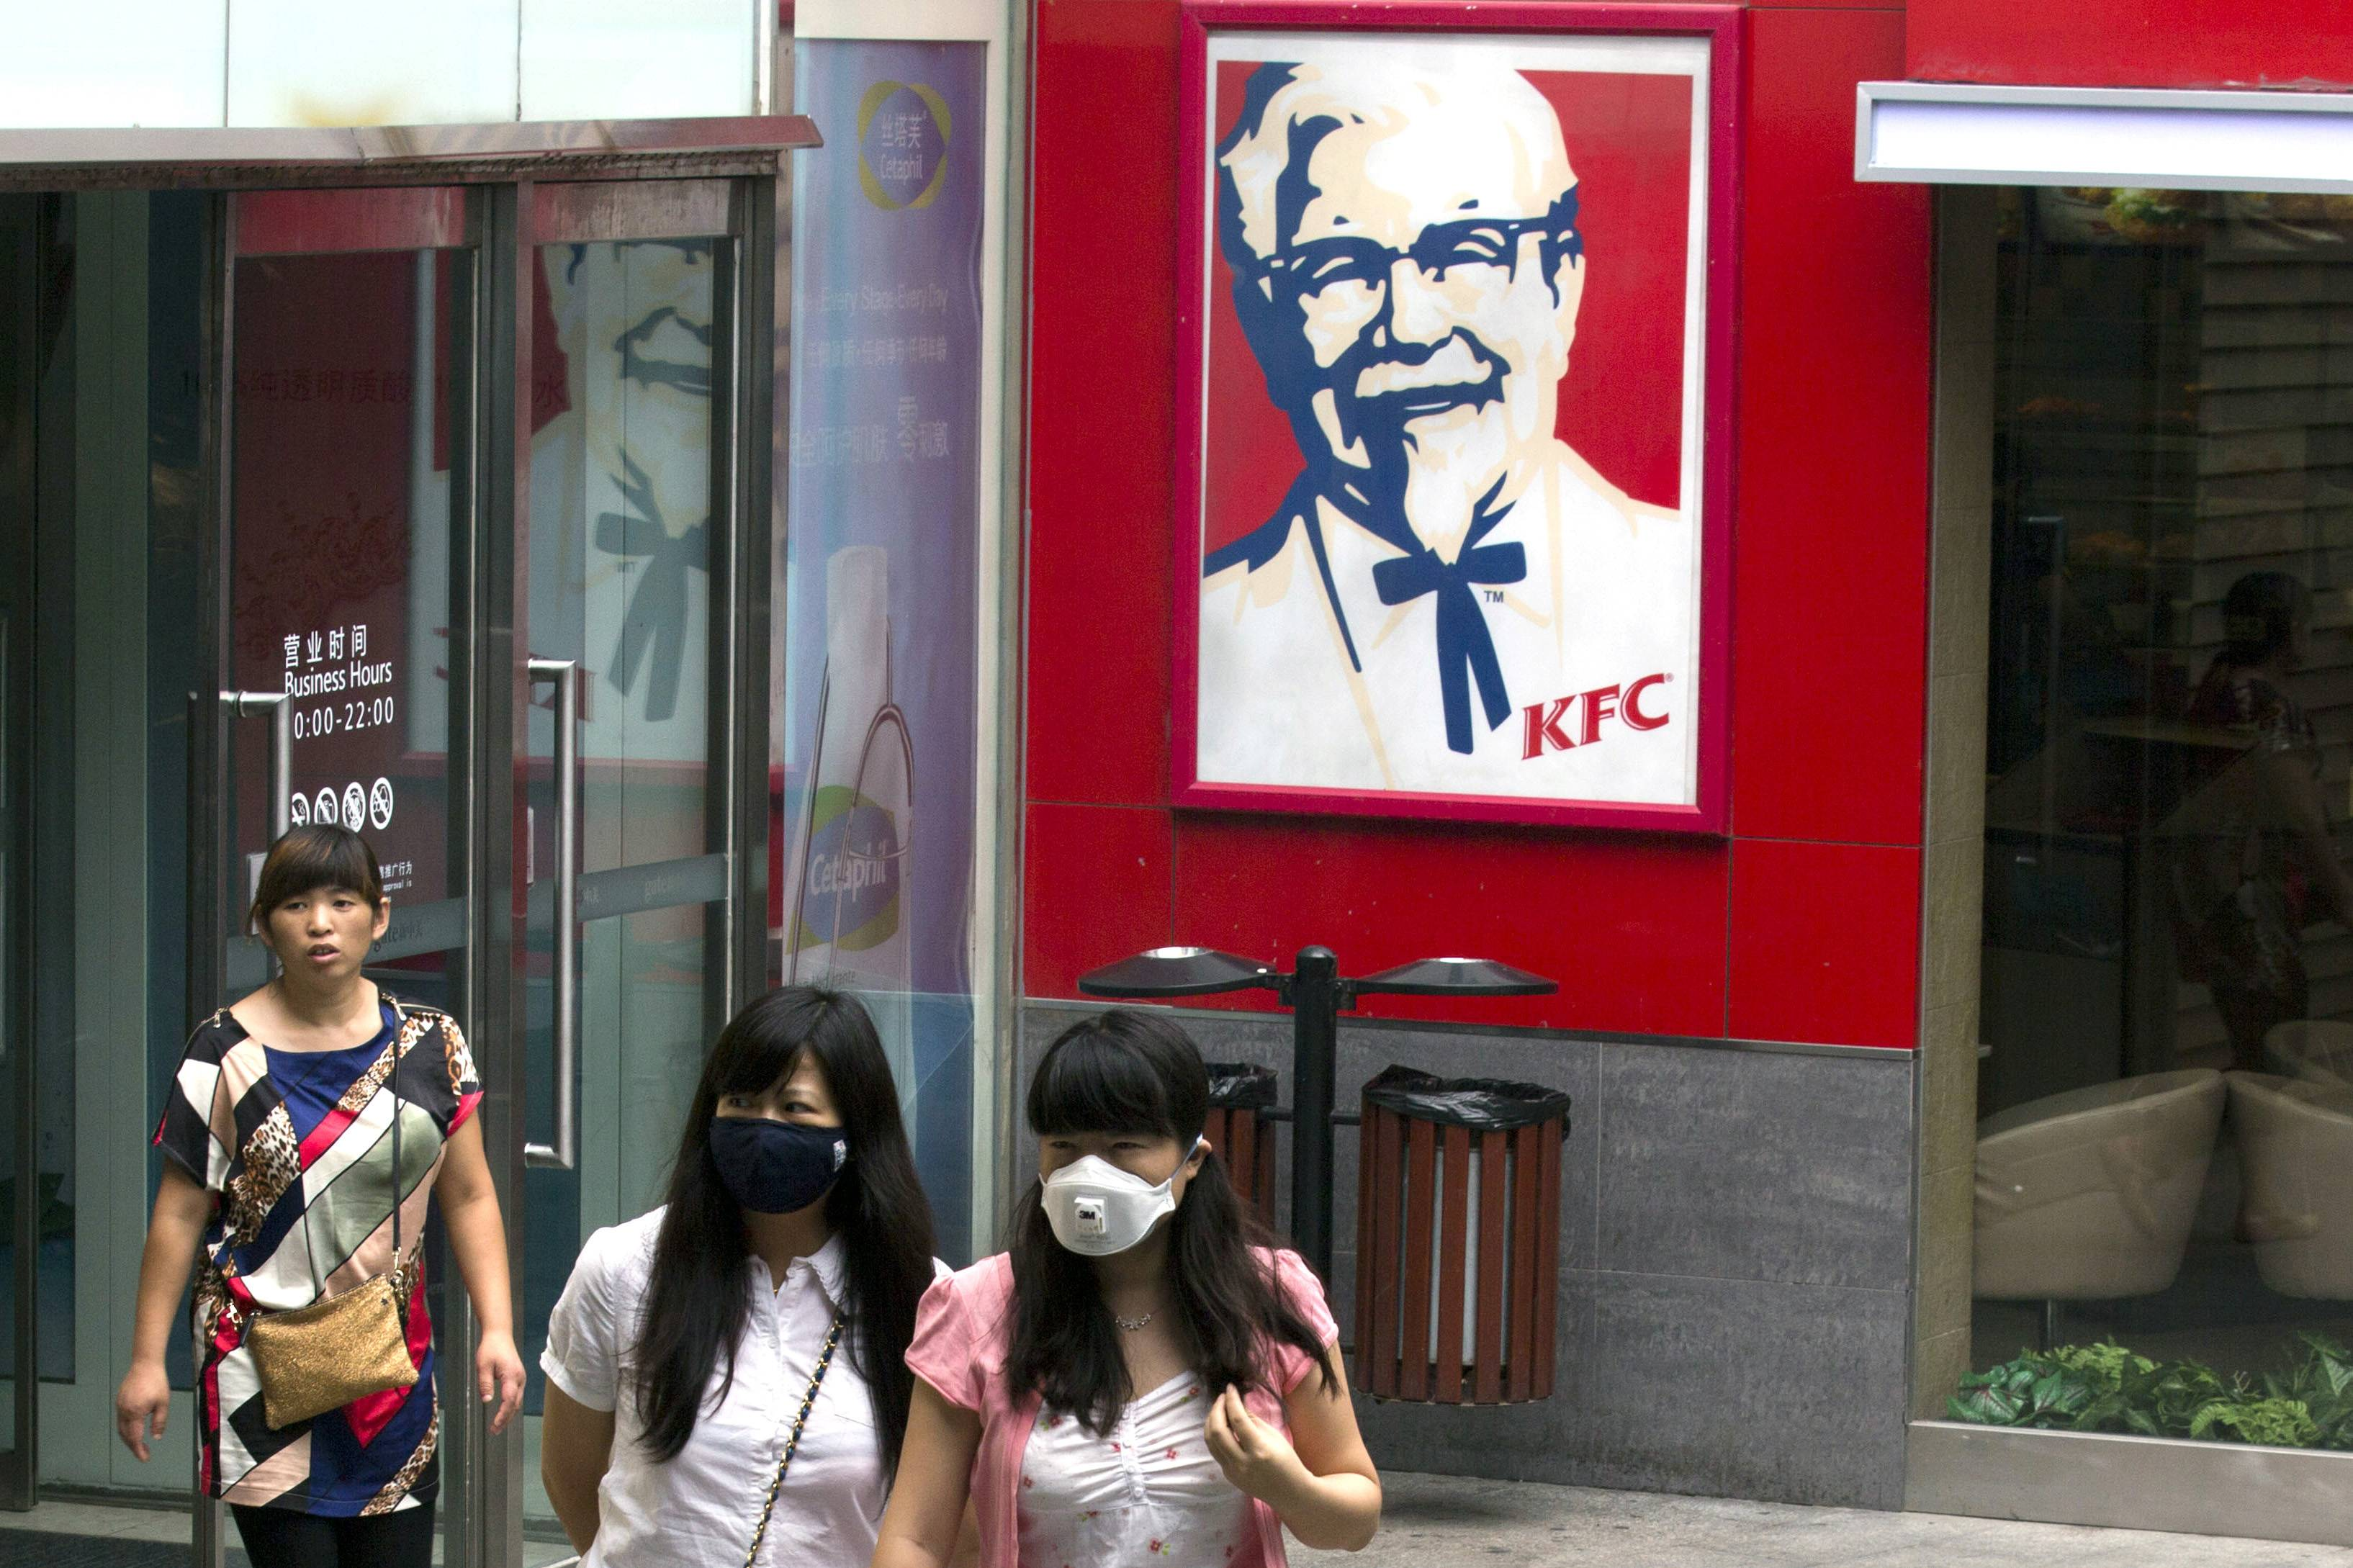 Women wearing masks during a polluted day walk outside a KFC restaurant in Beijing, China, Thursday, July 31, 2014. Already China's biggest restaurant operator with 4,600 outlets, KFC the Louisville, Kentucky-based chain is reeling after a Chinese supplier was accused of selling expired beef and chicken to it, McDonald's and possibly other restaurant chains. Just 18 months earlier, KFC's sales plunged in China after a supplier violated rules on drug use in chickens.